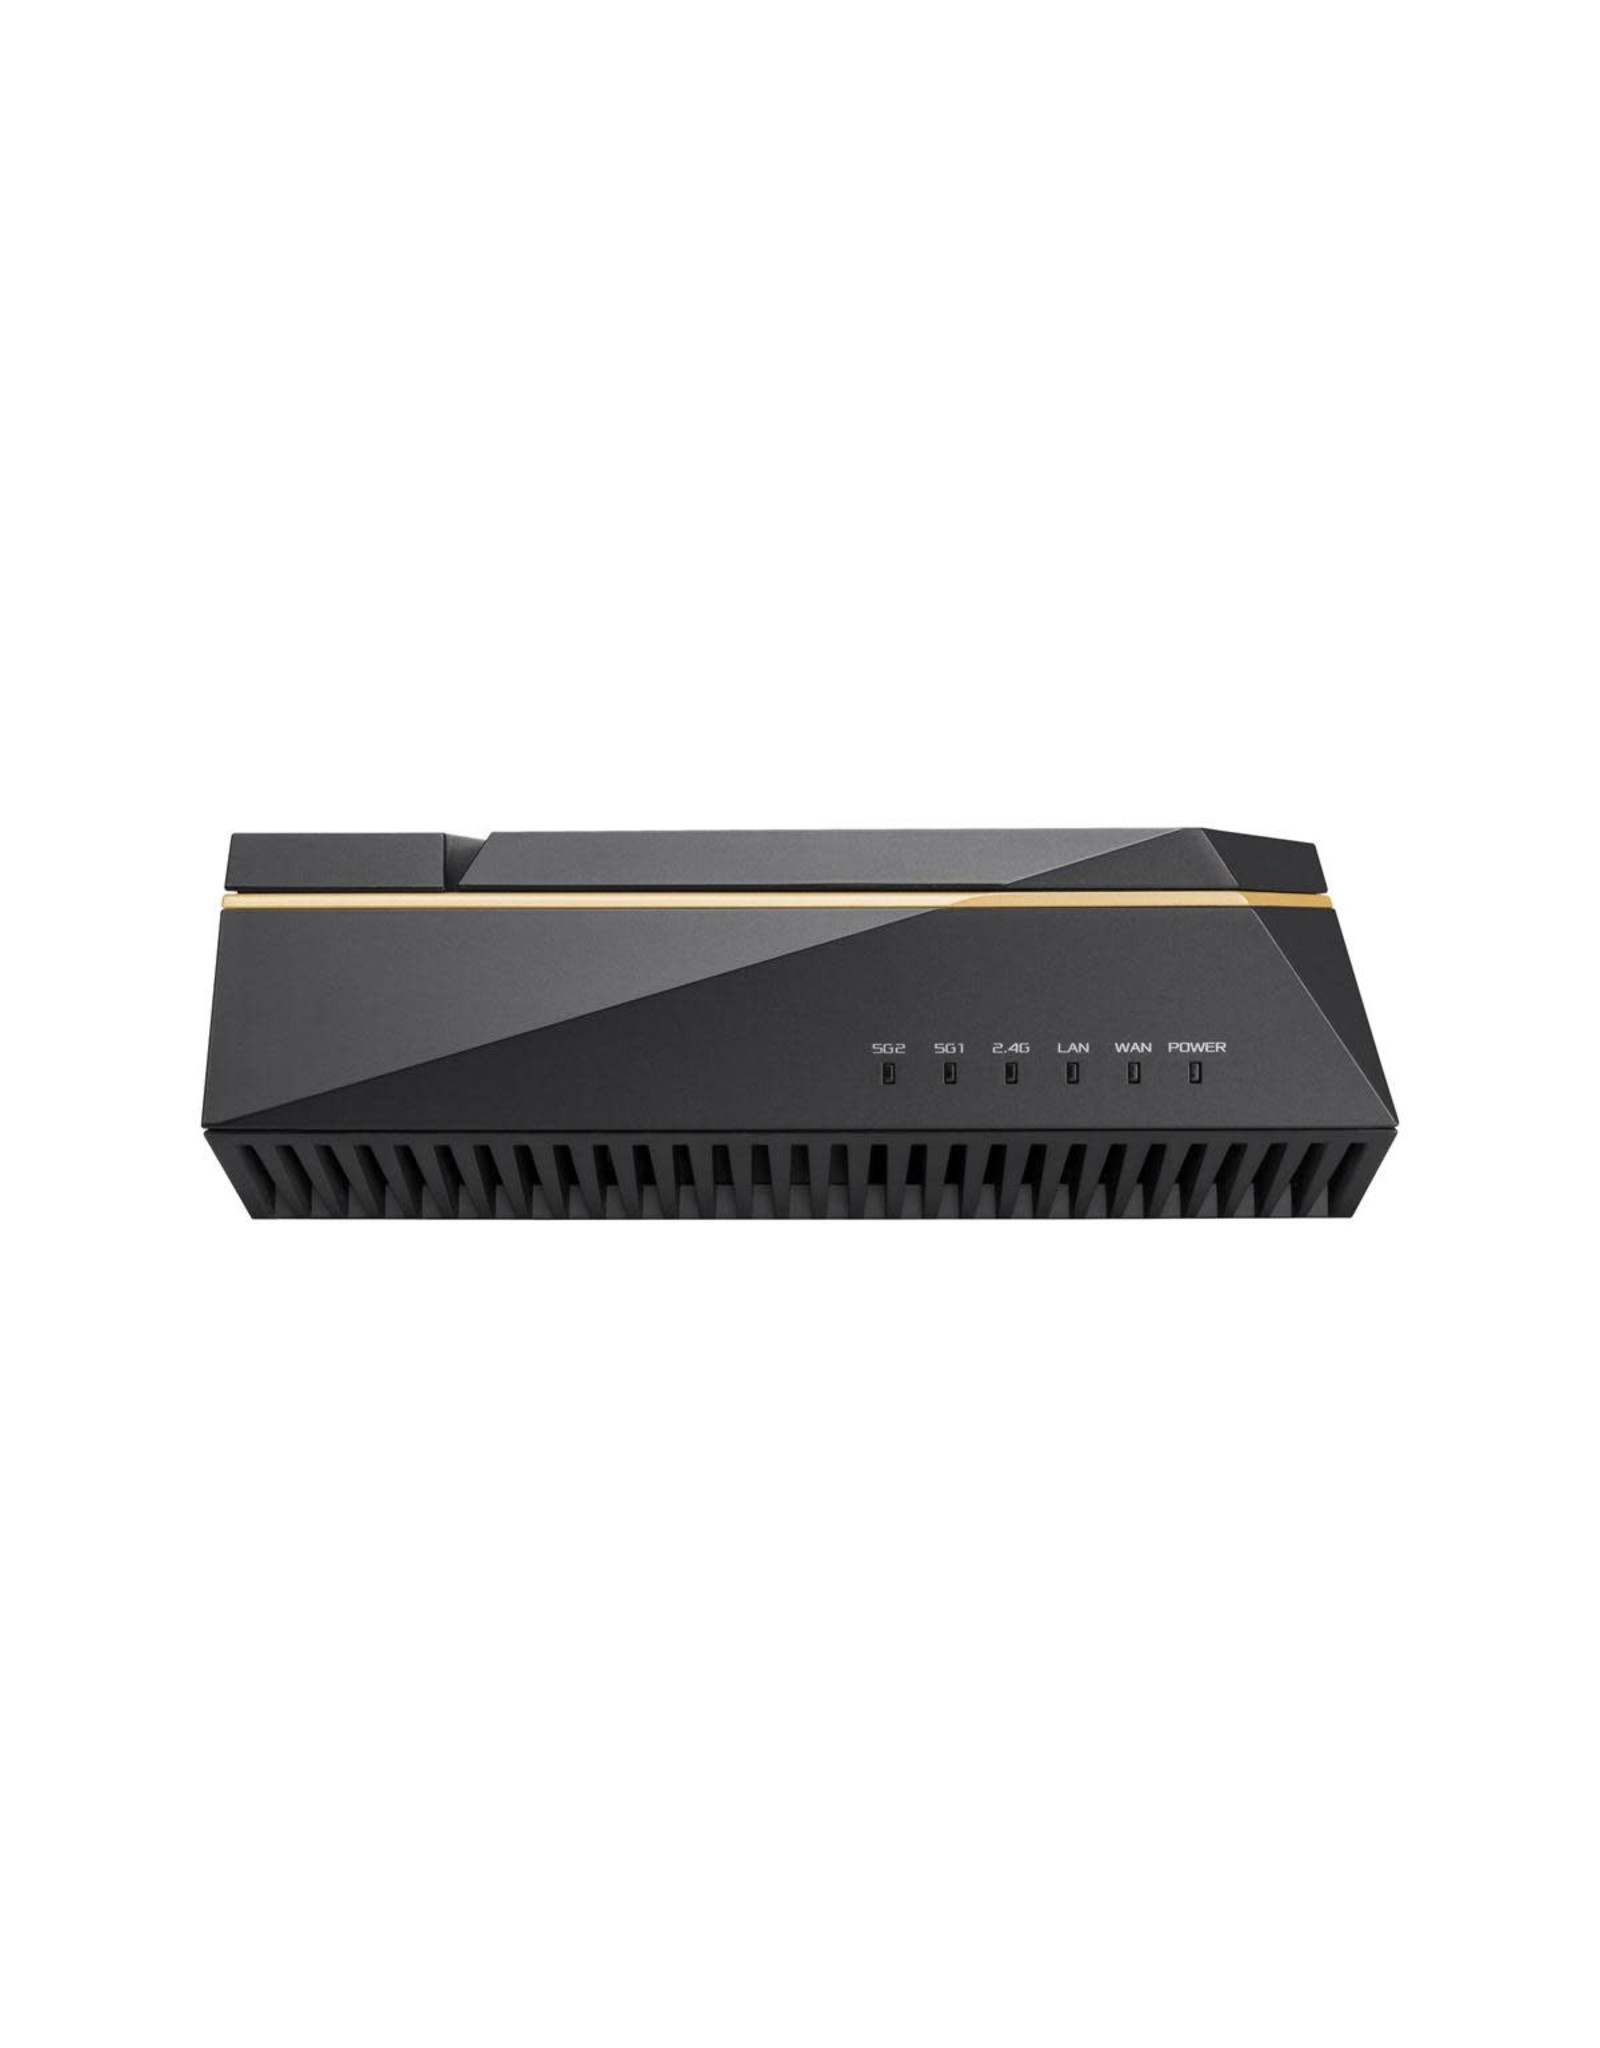 ASUS Wireless Router - ASUS AX6100 Tri Band WiFi 6 Gaming Router